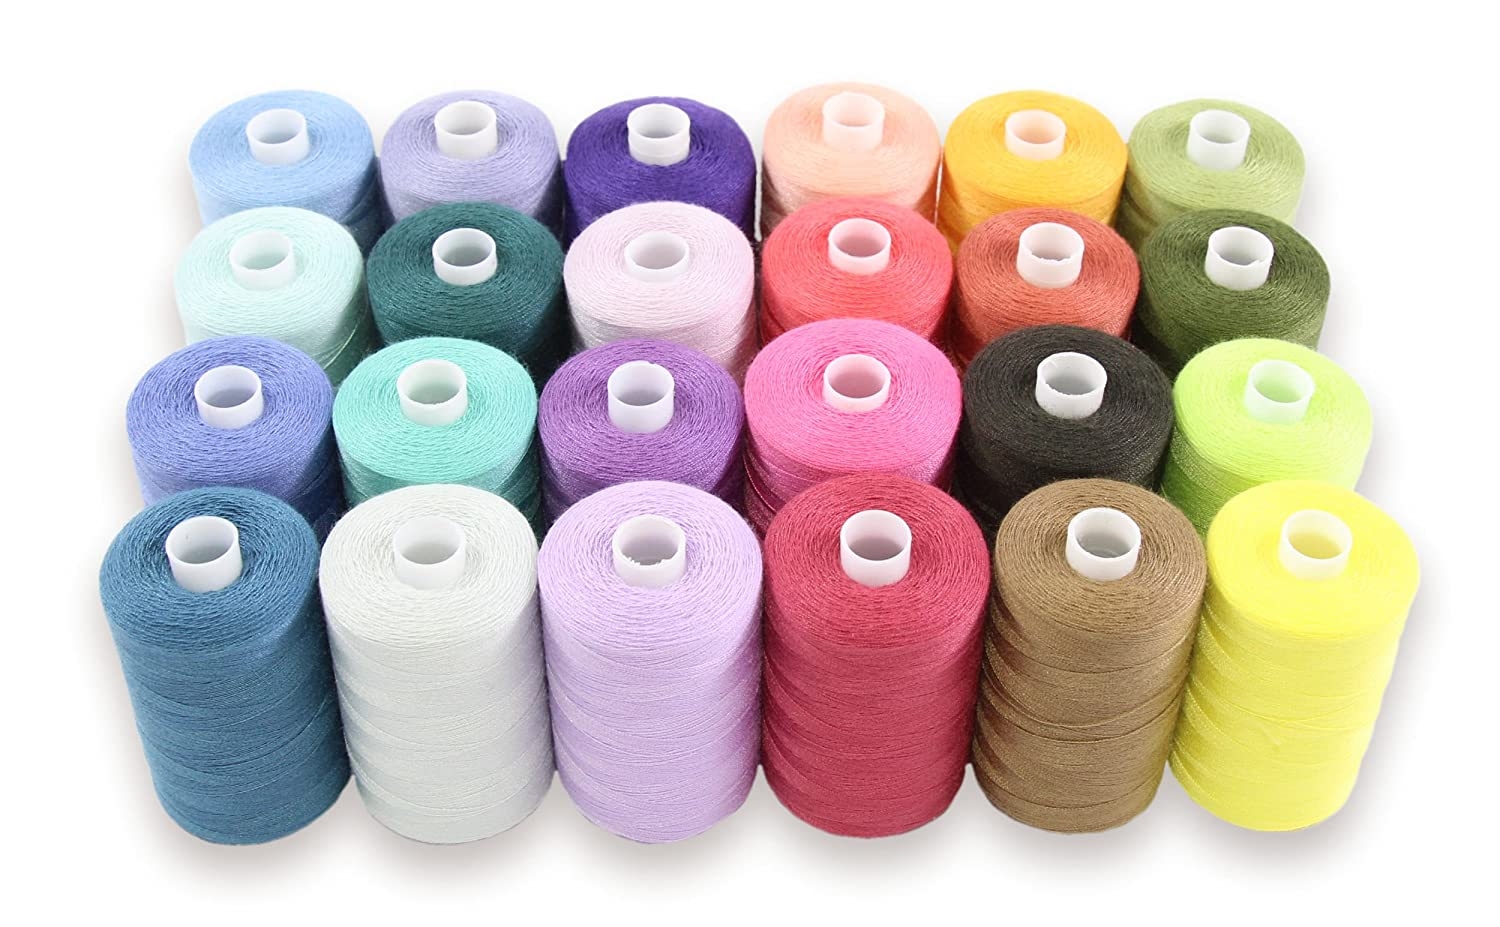 SEWING AID All Purpose Polyester Thread for Hand & Sewing Machine, 24 Spools in Assorted Colors, 1000 yd Each, Double of Black & White Threads GDG/0200